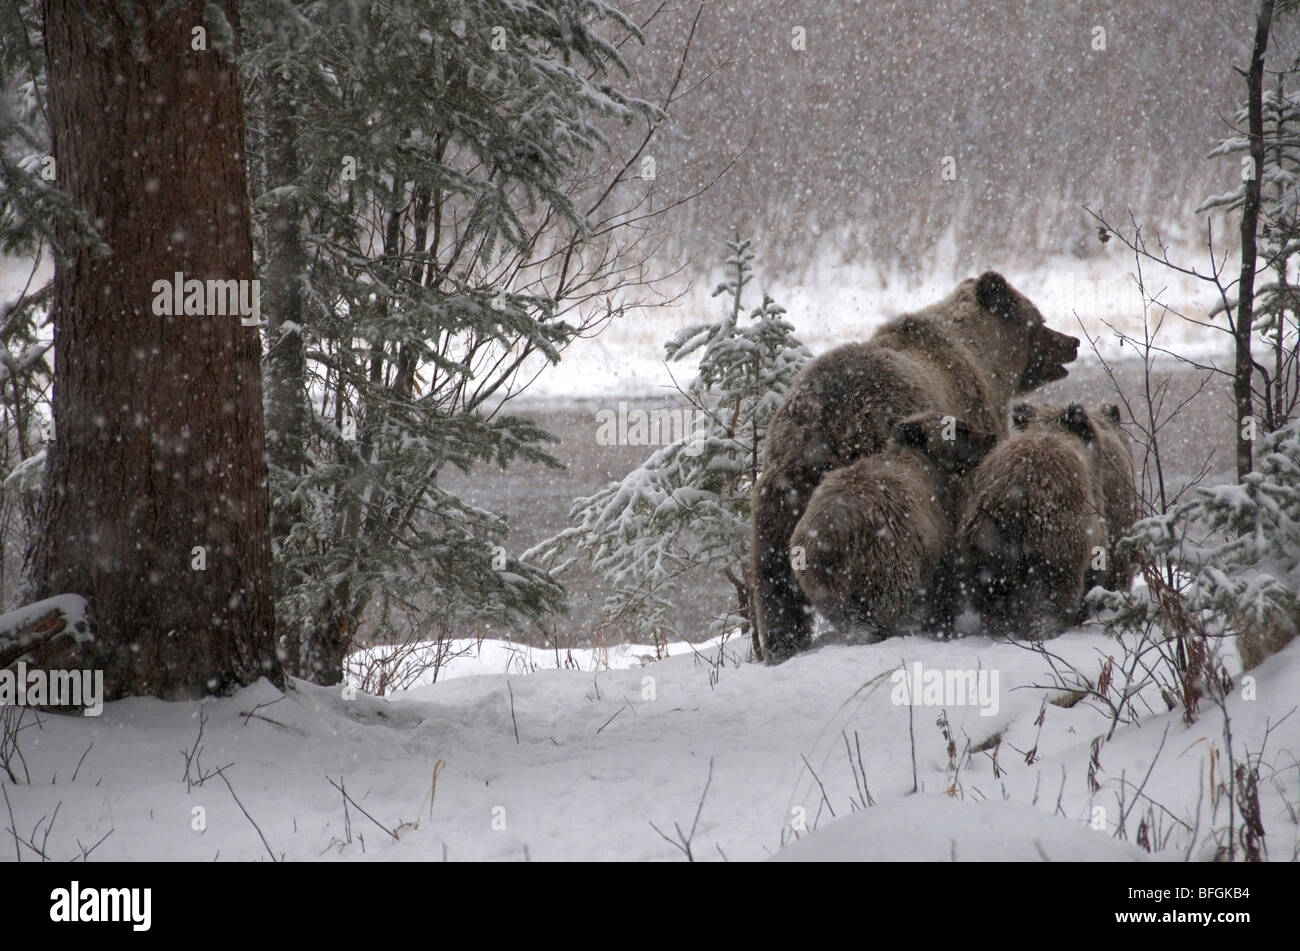 Grizzly Bear (Ursus arctos) sow and 1st year cubs walking through snowy forest. Fishing Branch River Ni'iinlii Njik Stock Photo